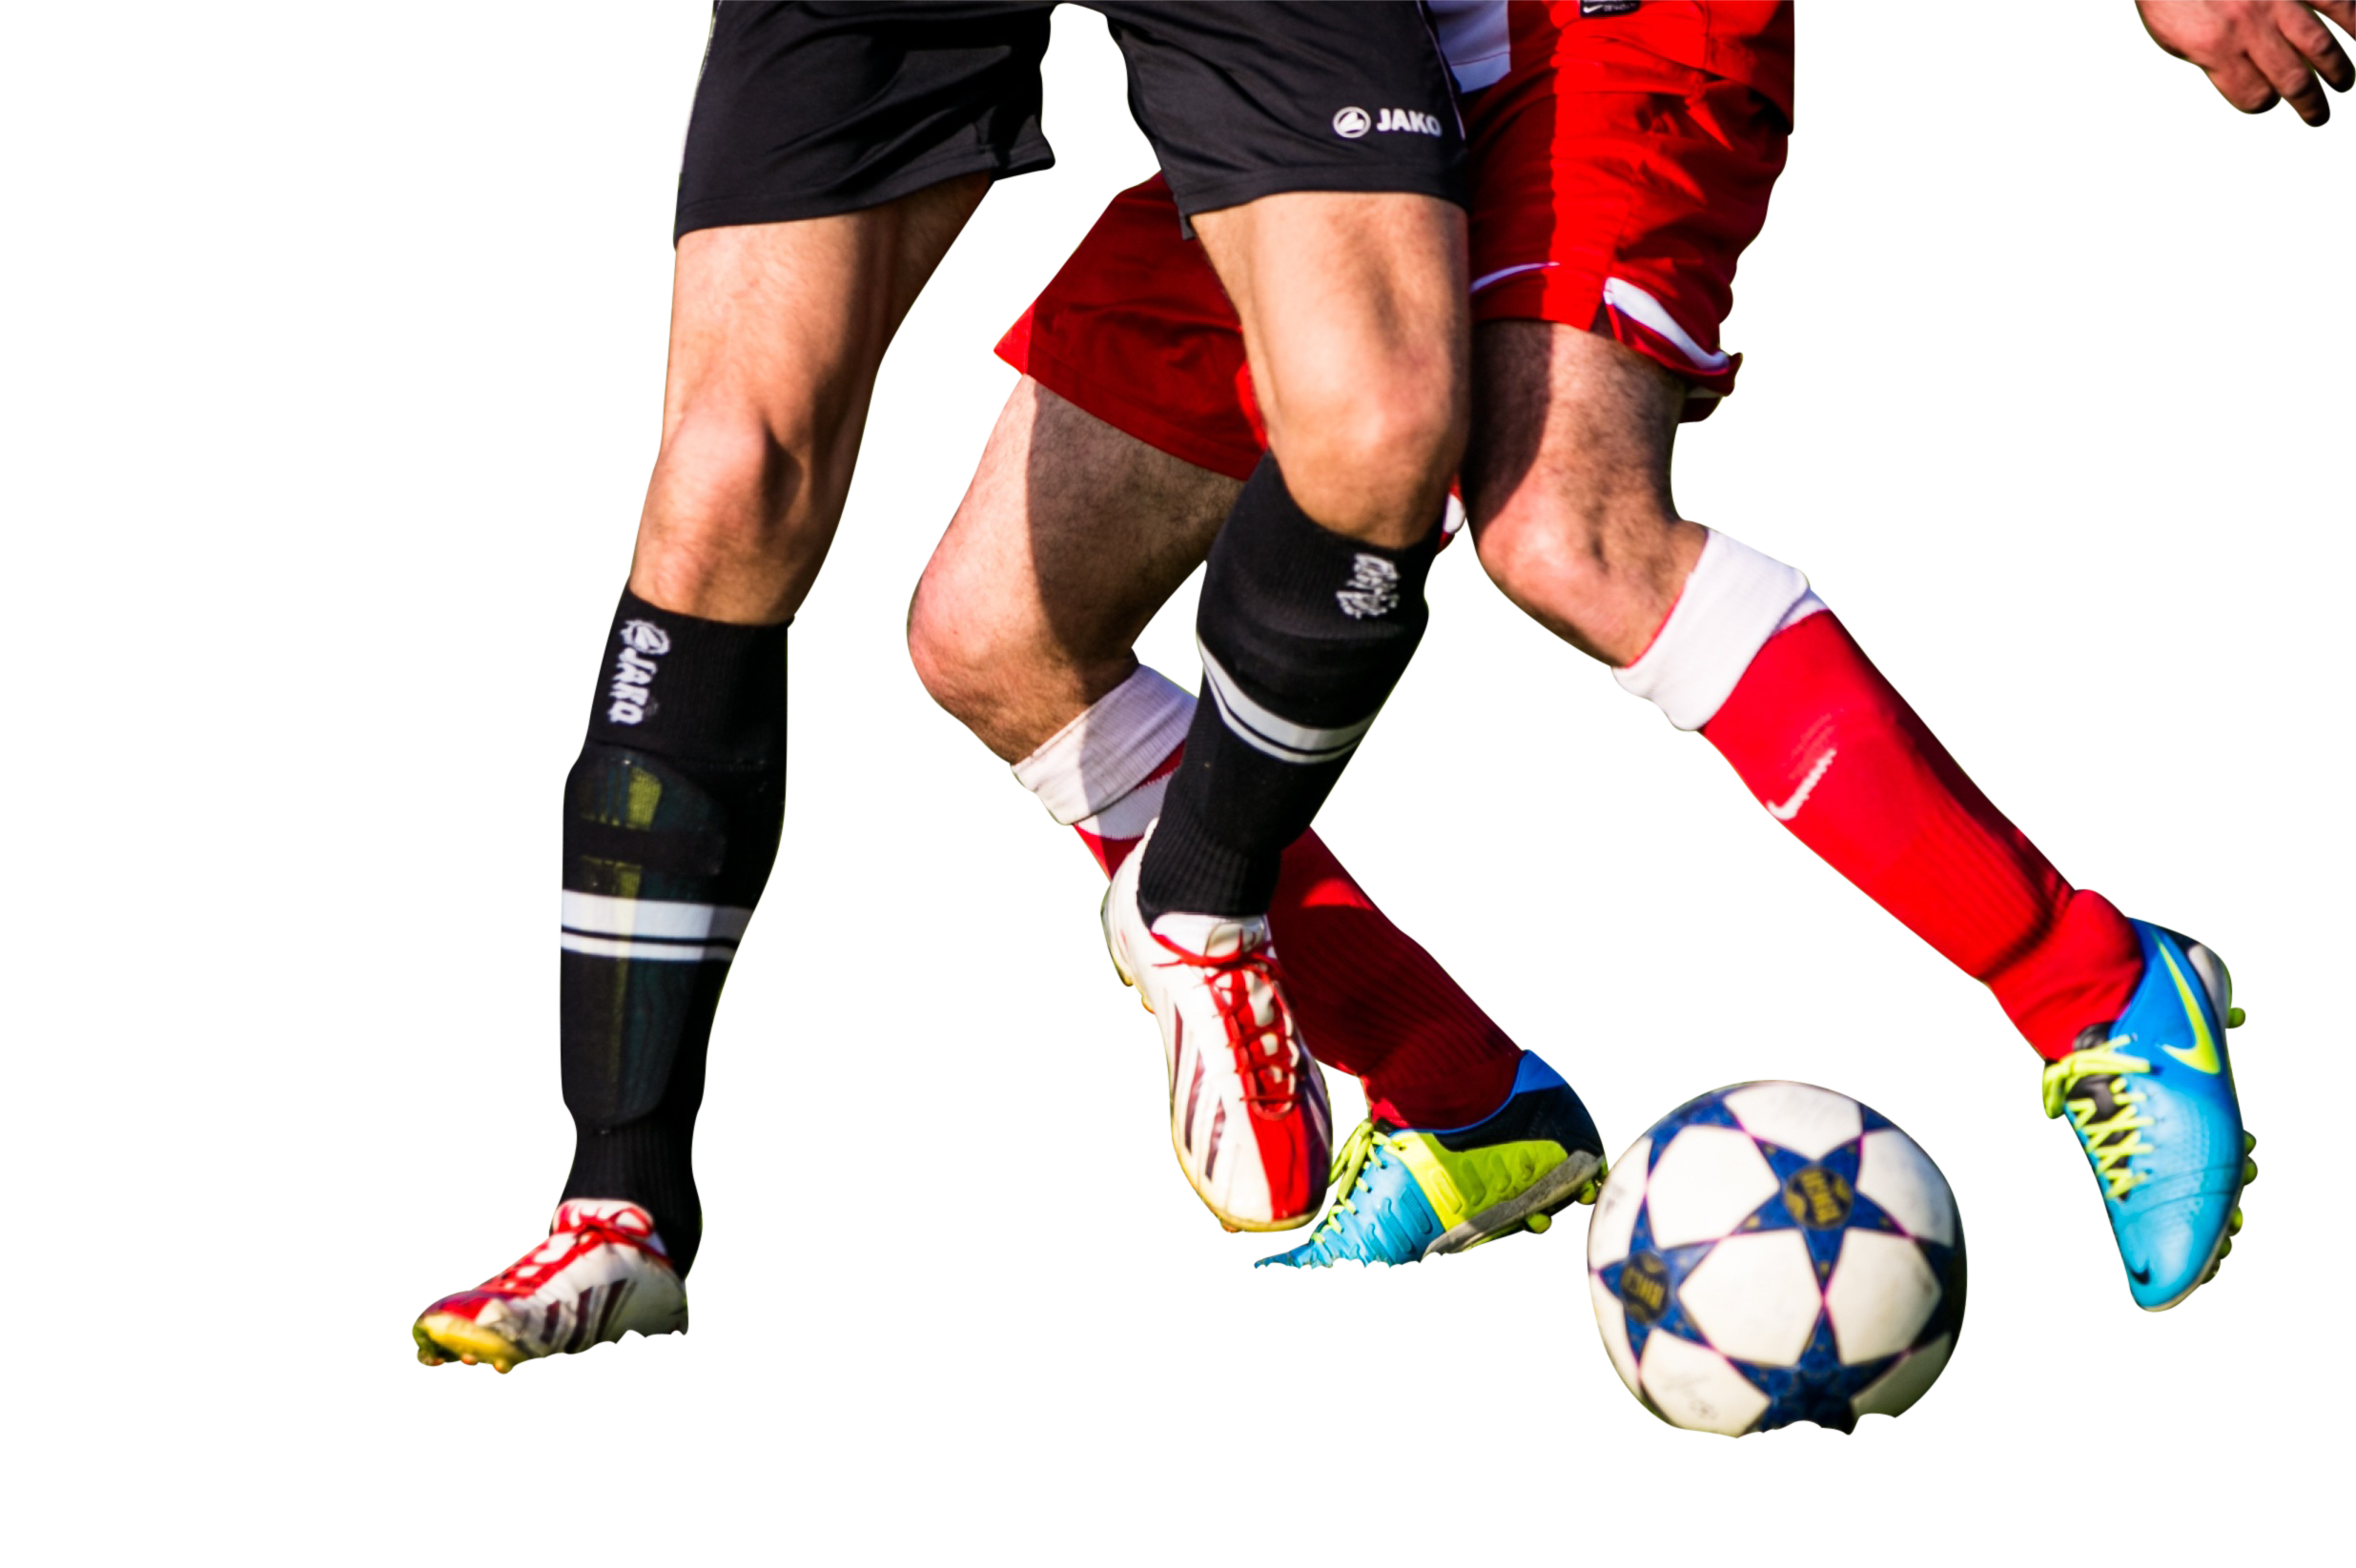 Football player-sport- PNG image with transparent background